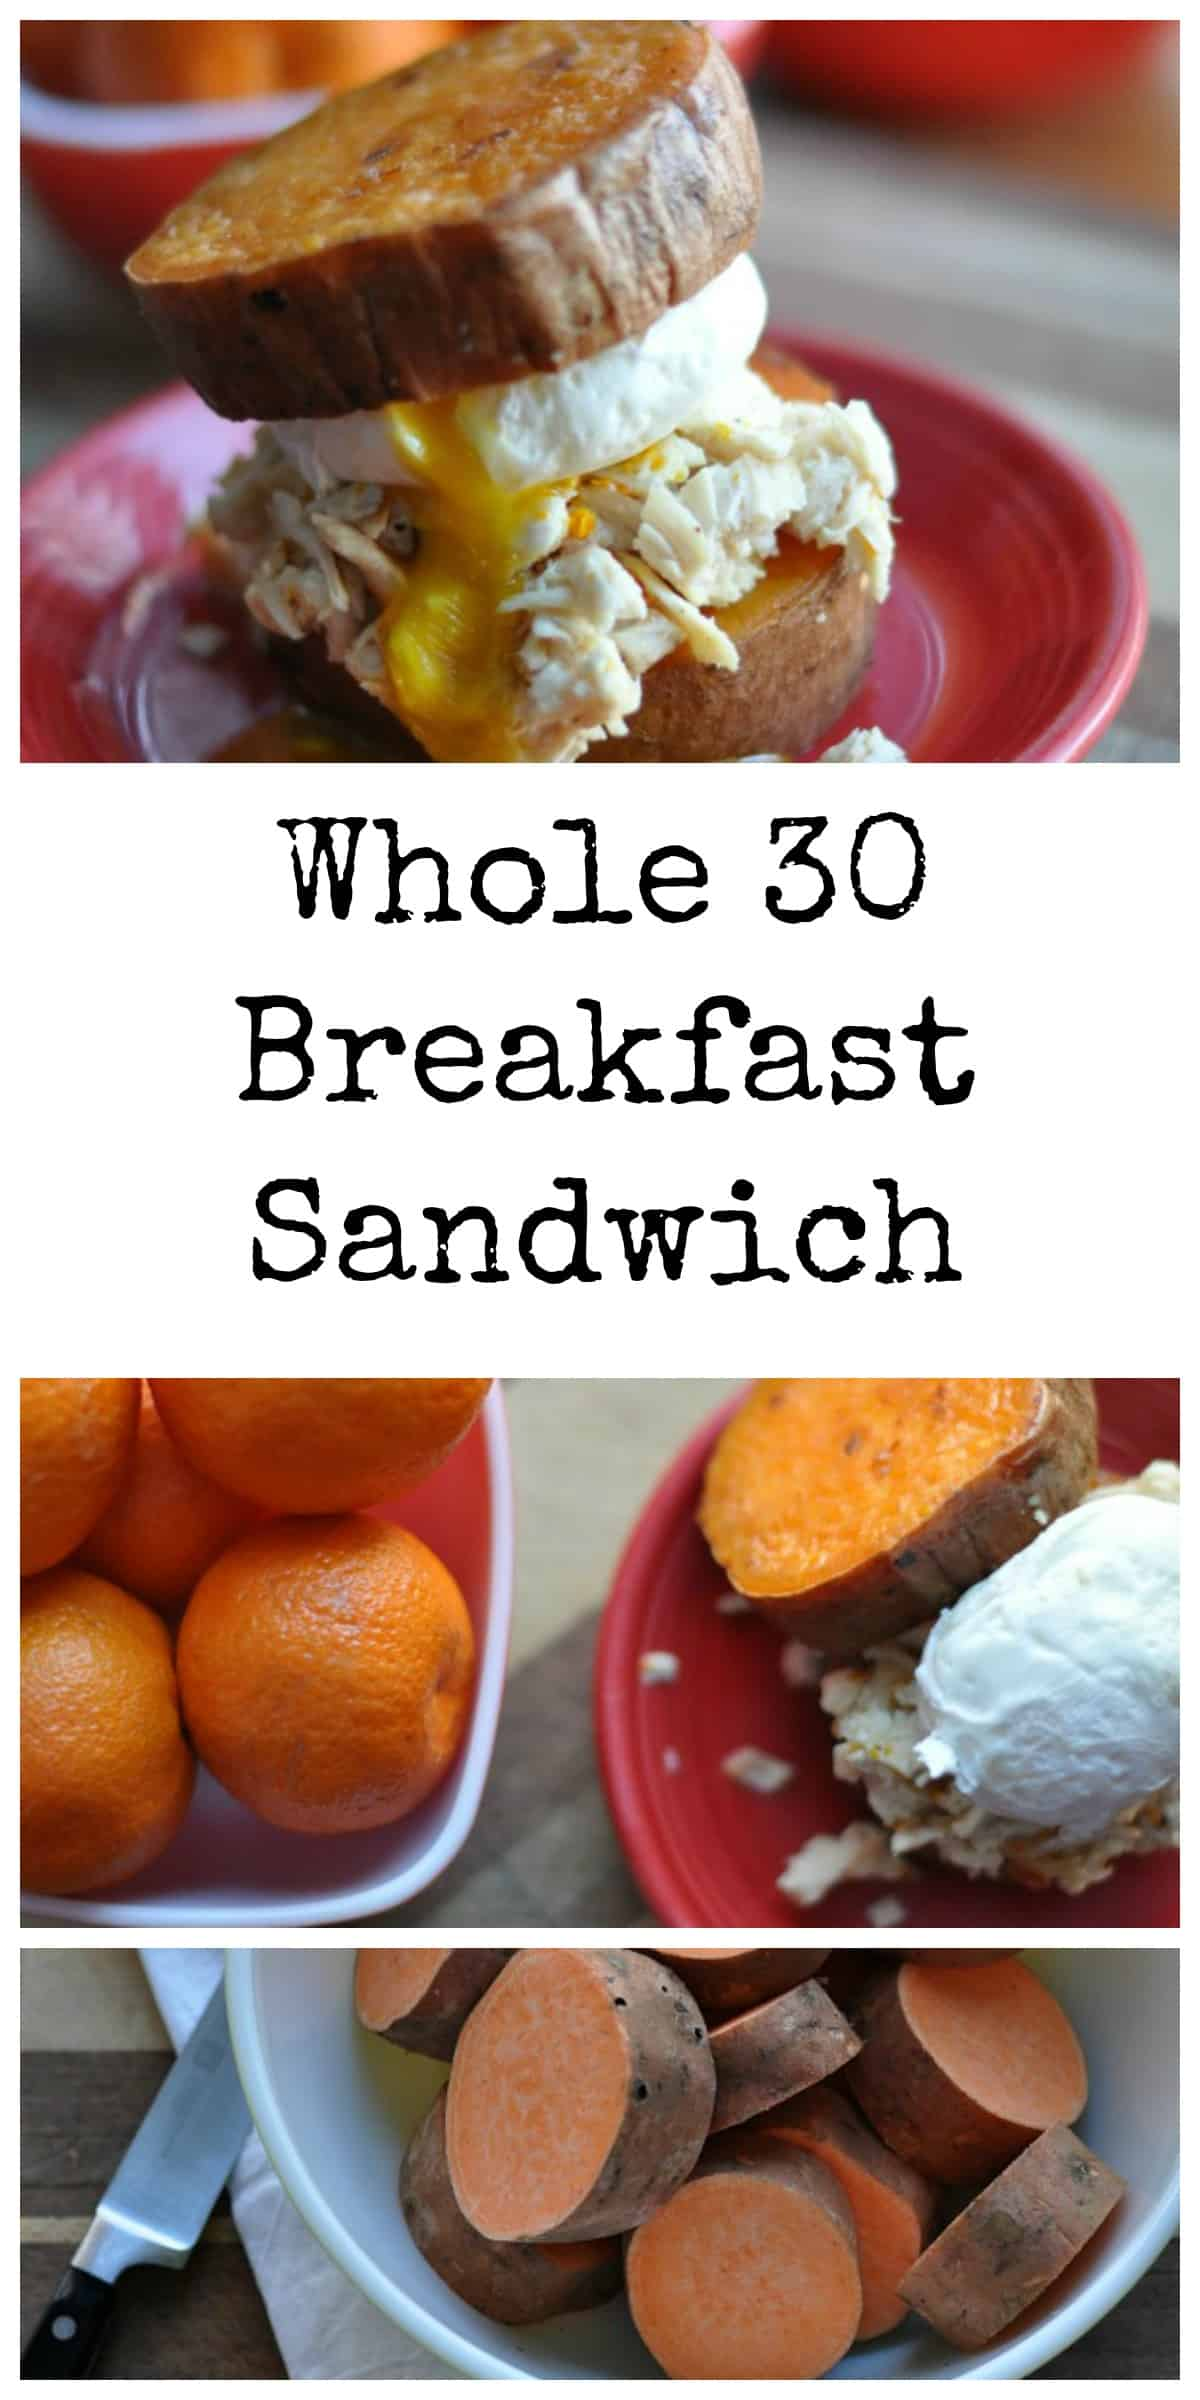 Whole 30 Breakfast Sandwich Dining With Alice